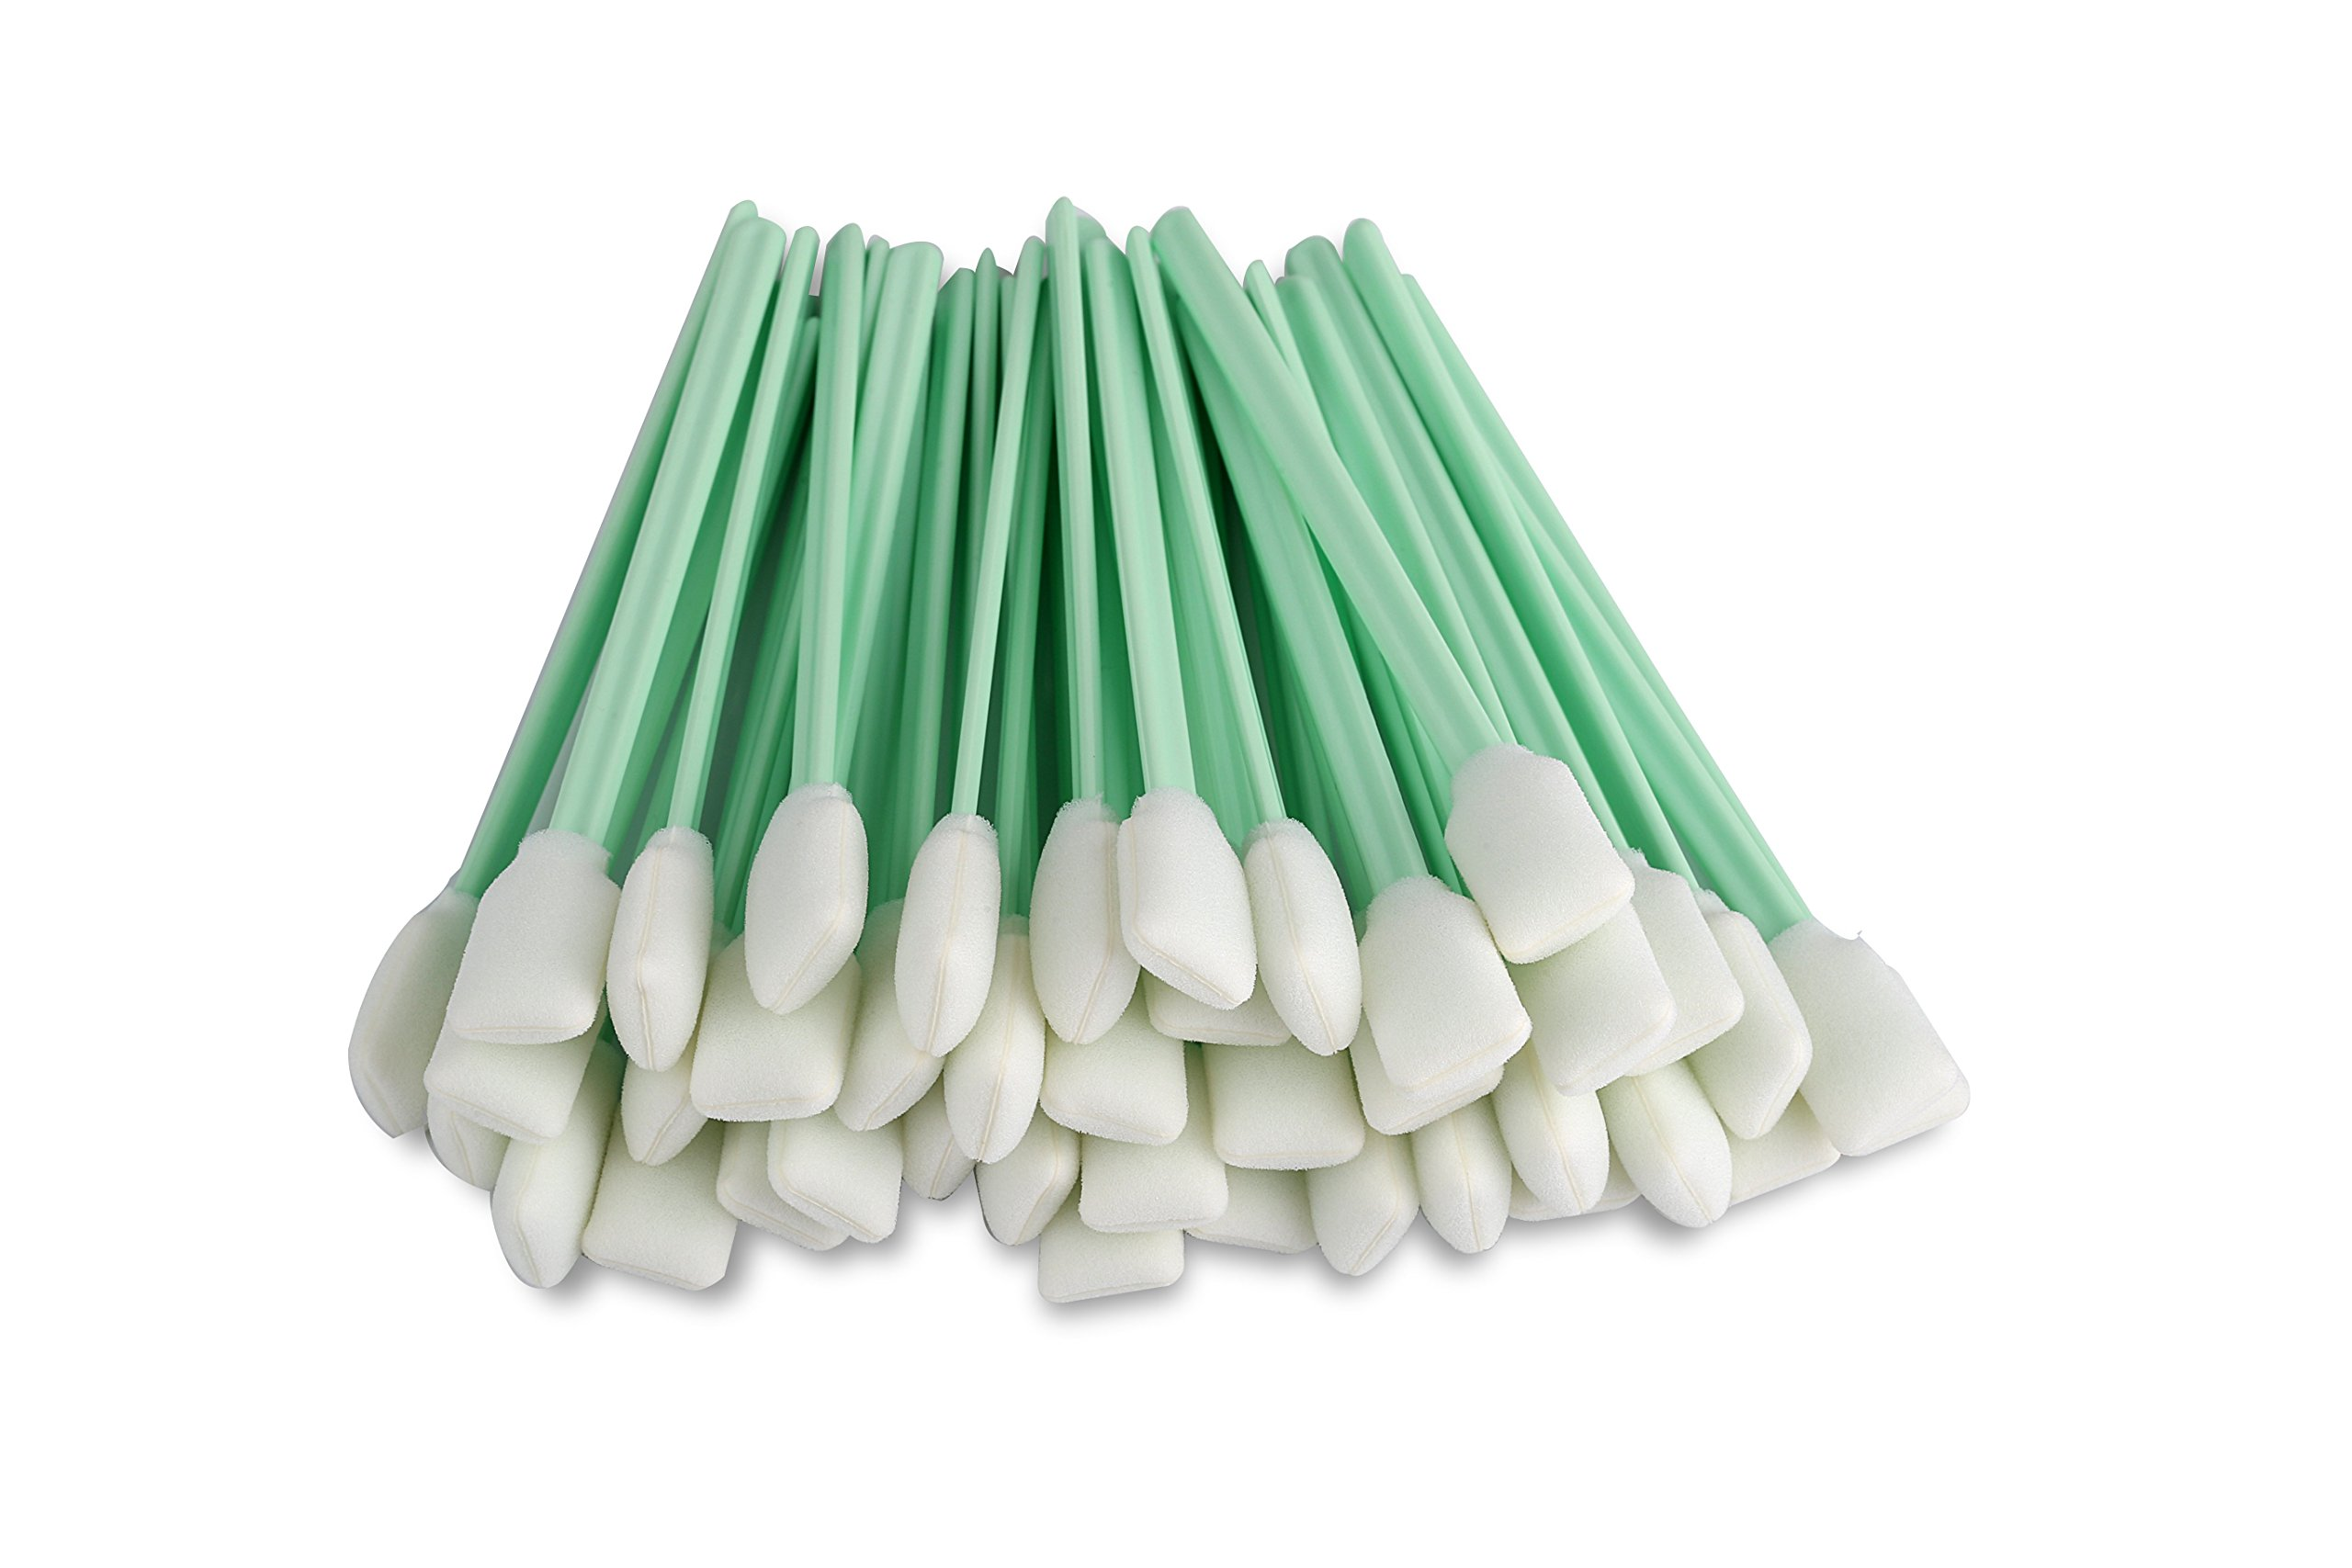 Zetek 5'' Long 100 pcs Foam Tip Cleaning Swabs Sponge Stick for Inkjet Print head Optical Lens Gun Cleaning Solvent Resistance